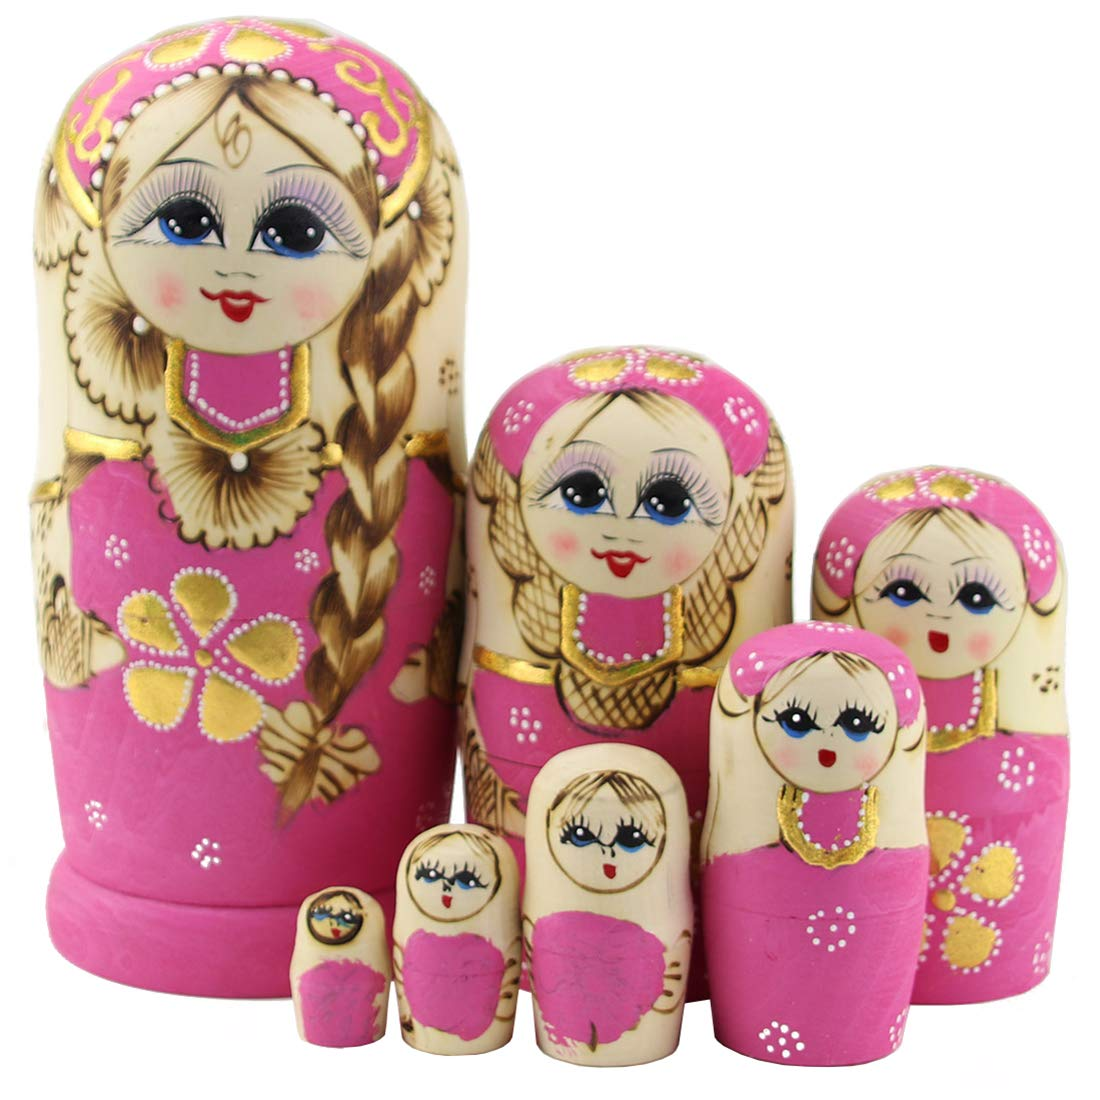 Moonmo 7pcs Cute Pink Sweater Braid Girl Russian Nesting Dolls Matryoshka Toys by Moonmo